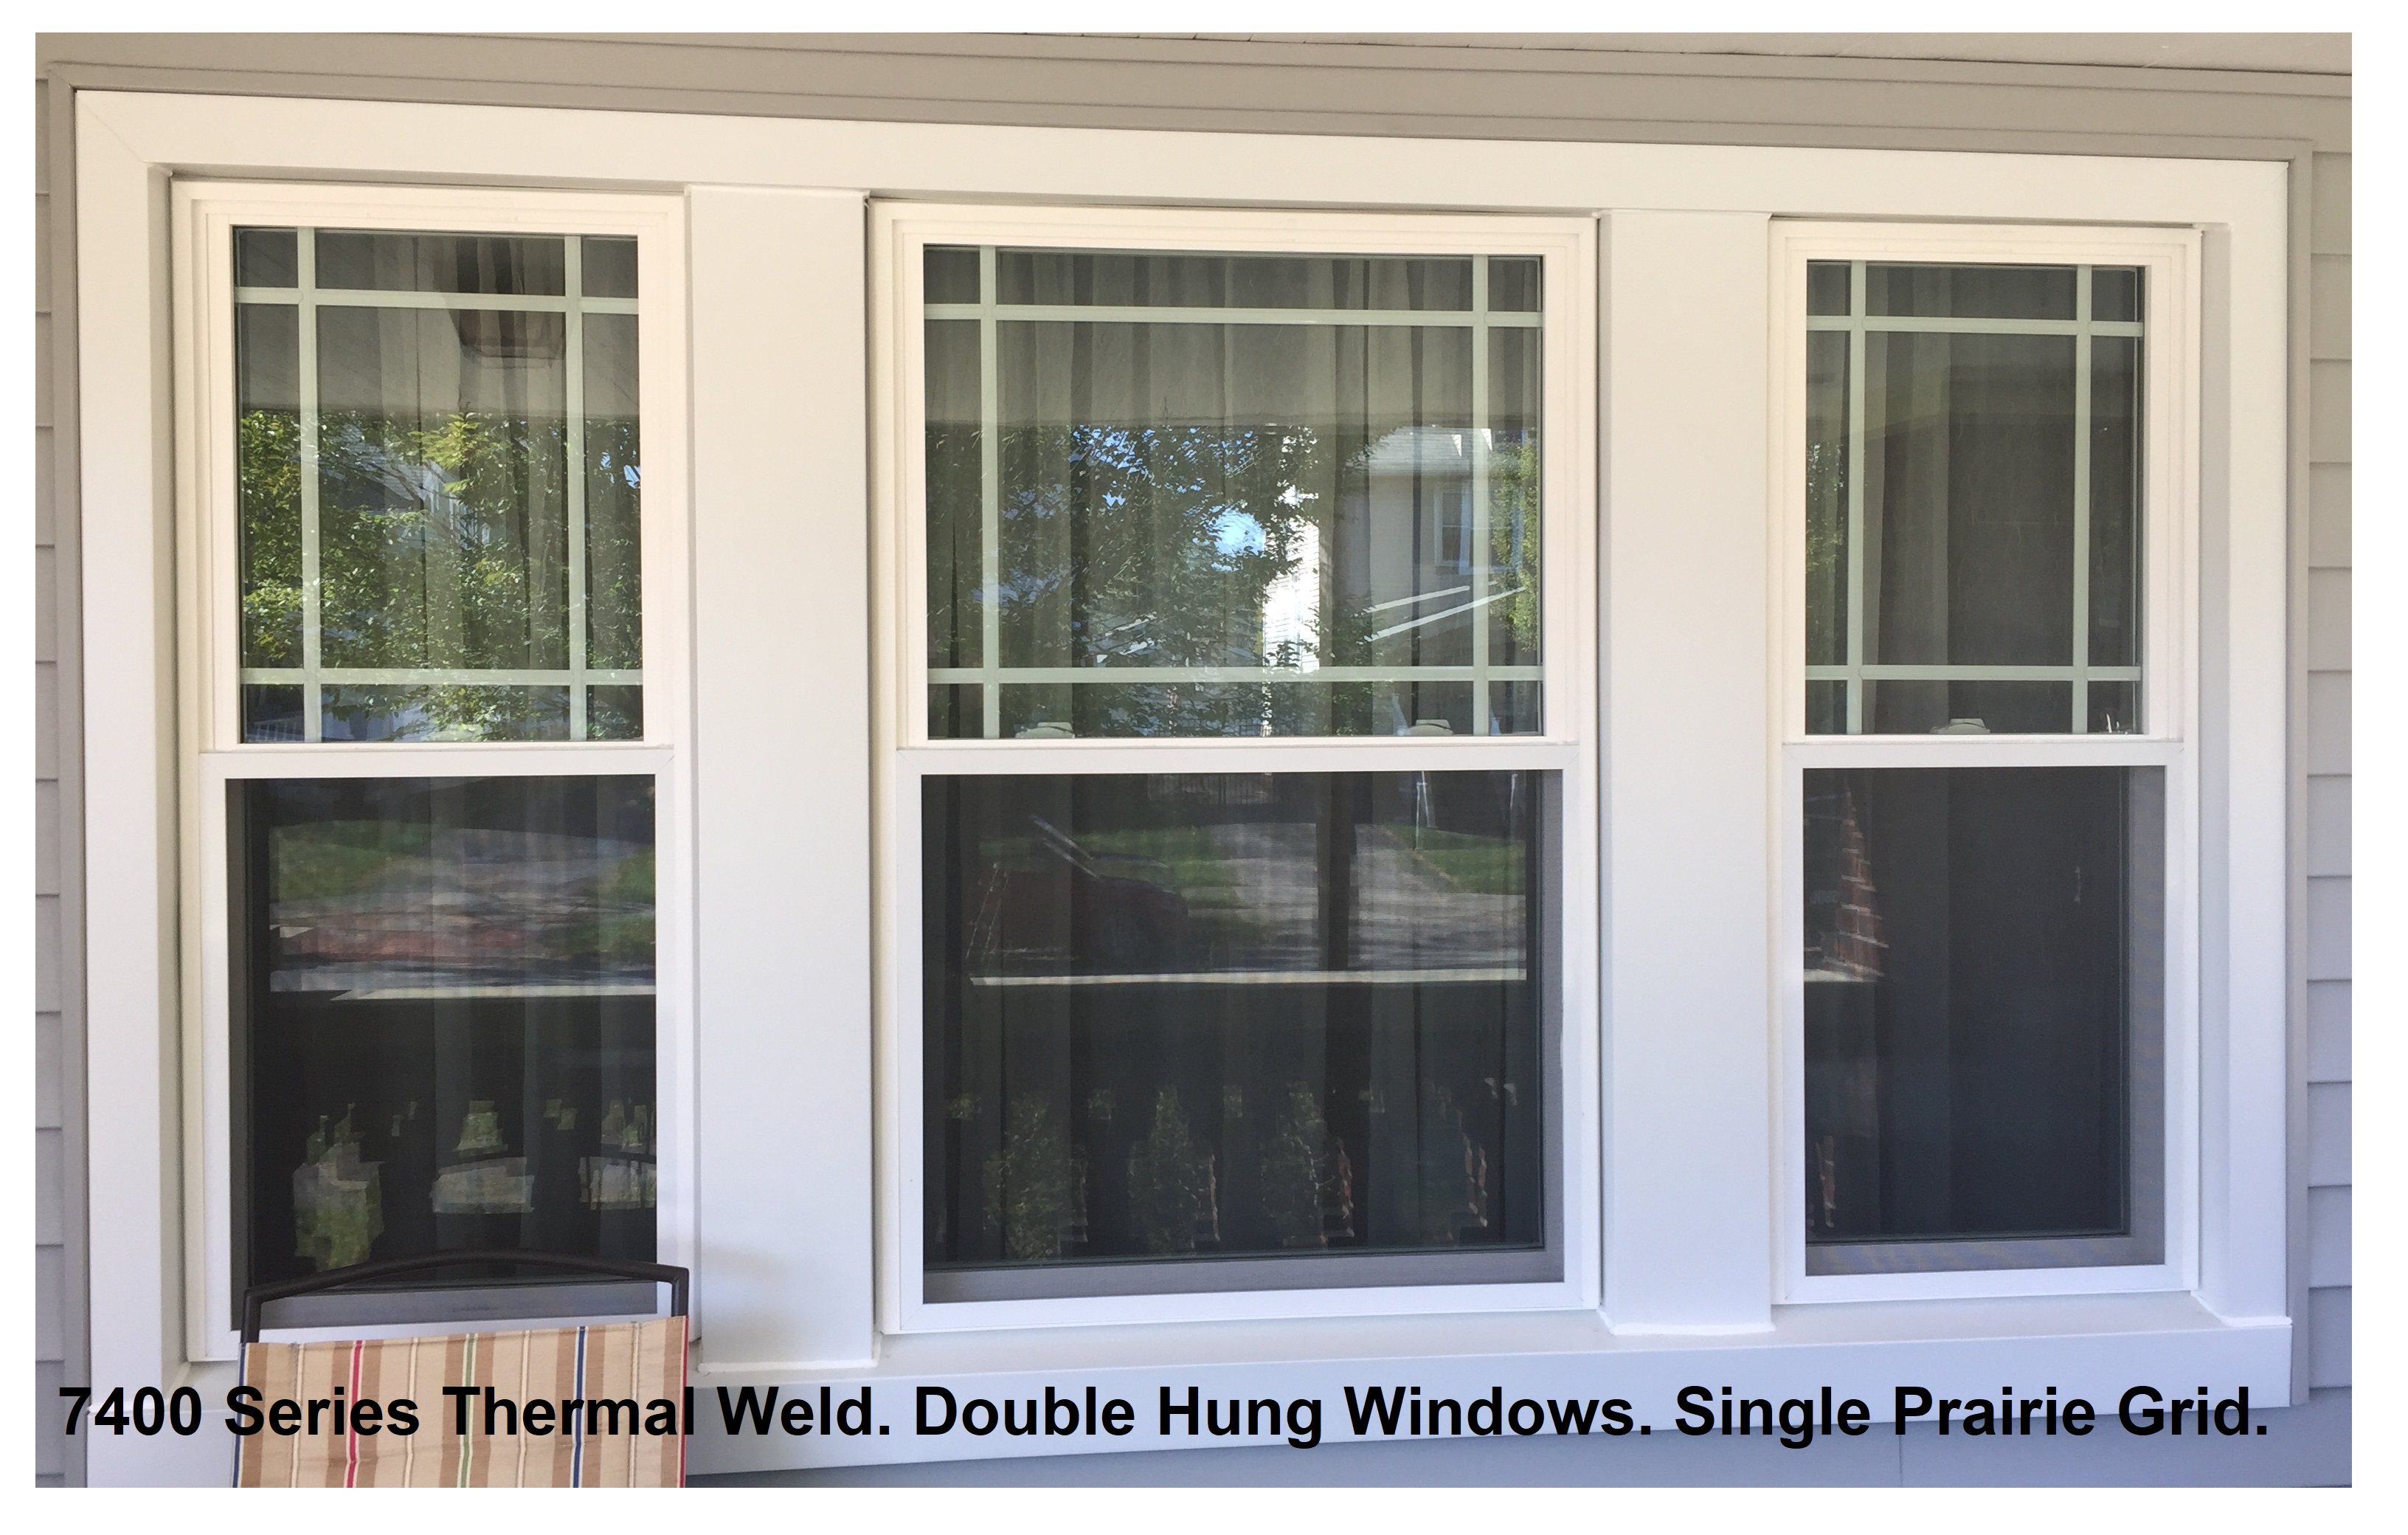 Vinyl Replacement Window With Prairie Grids